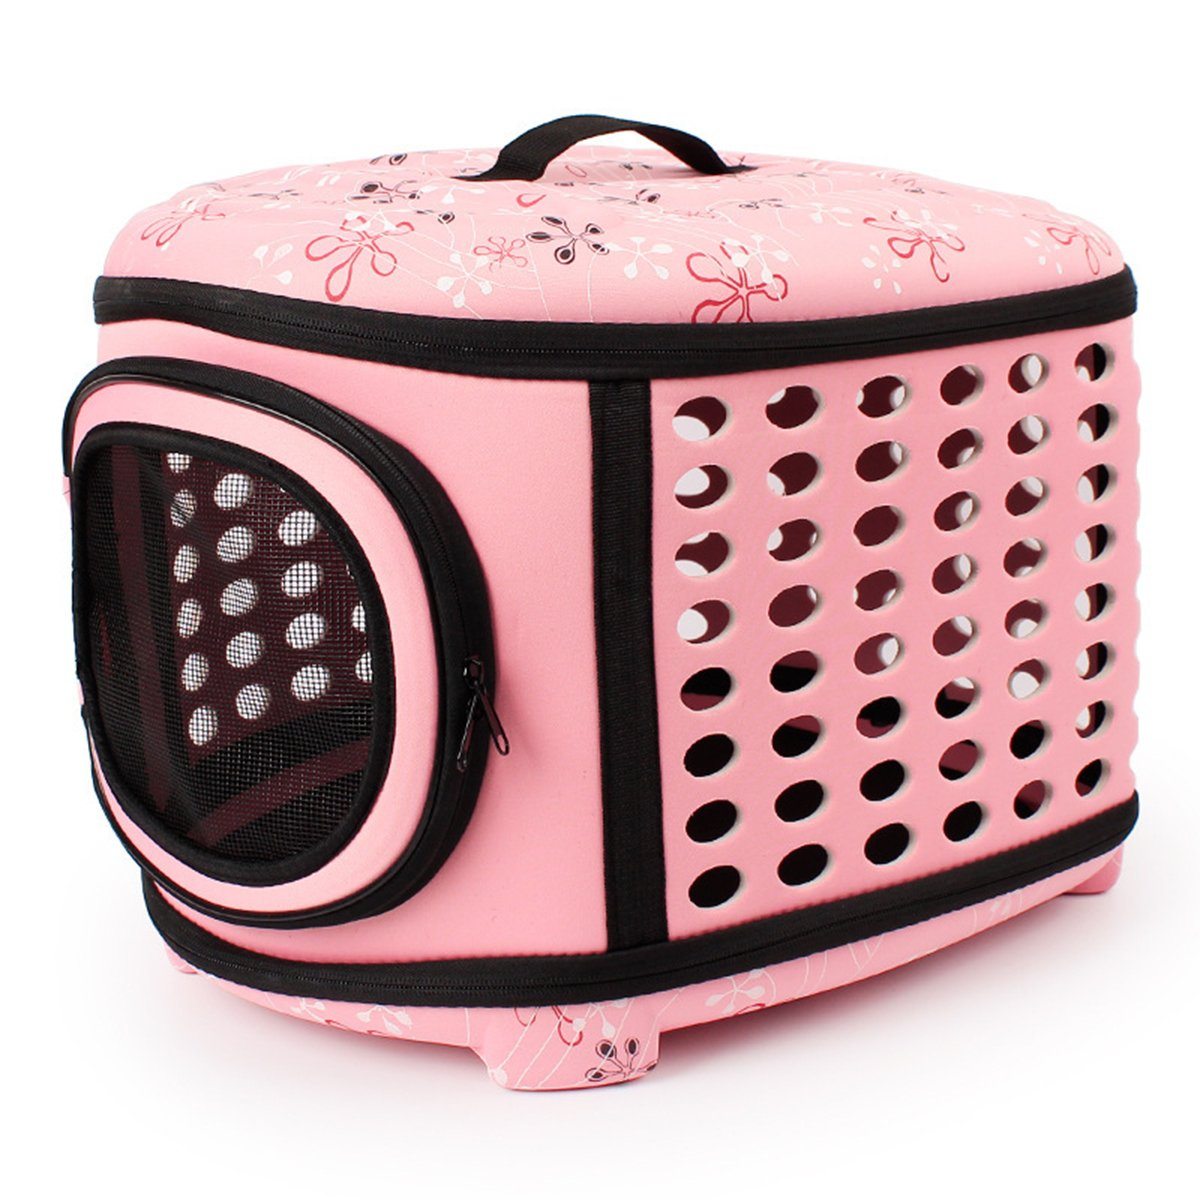 QZBAOSHU Cat Carrier Travel Kennel for Cats, Small Dogs Puppies & Rabbits 18LX14WX12H UQ-6GPN-4IPI